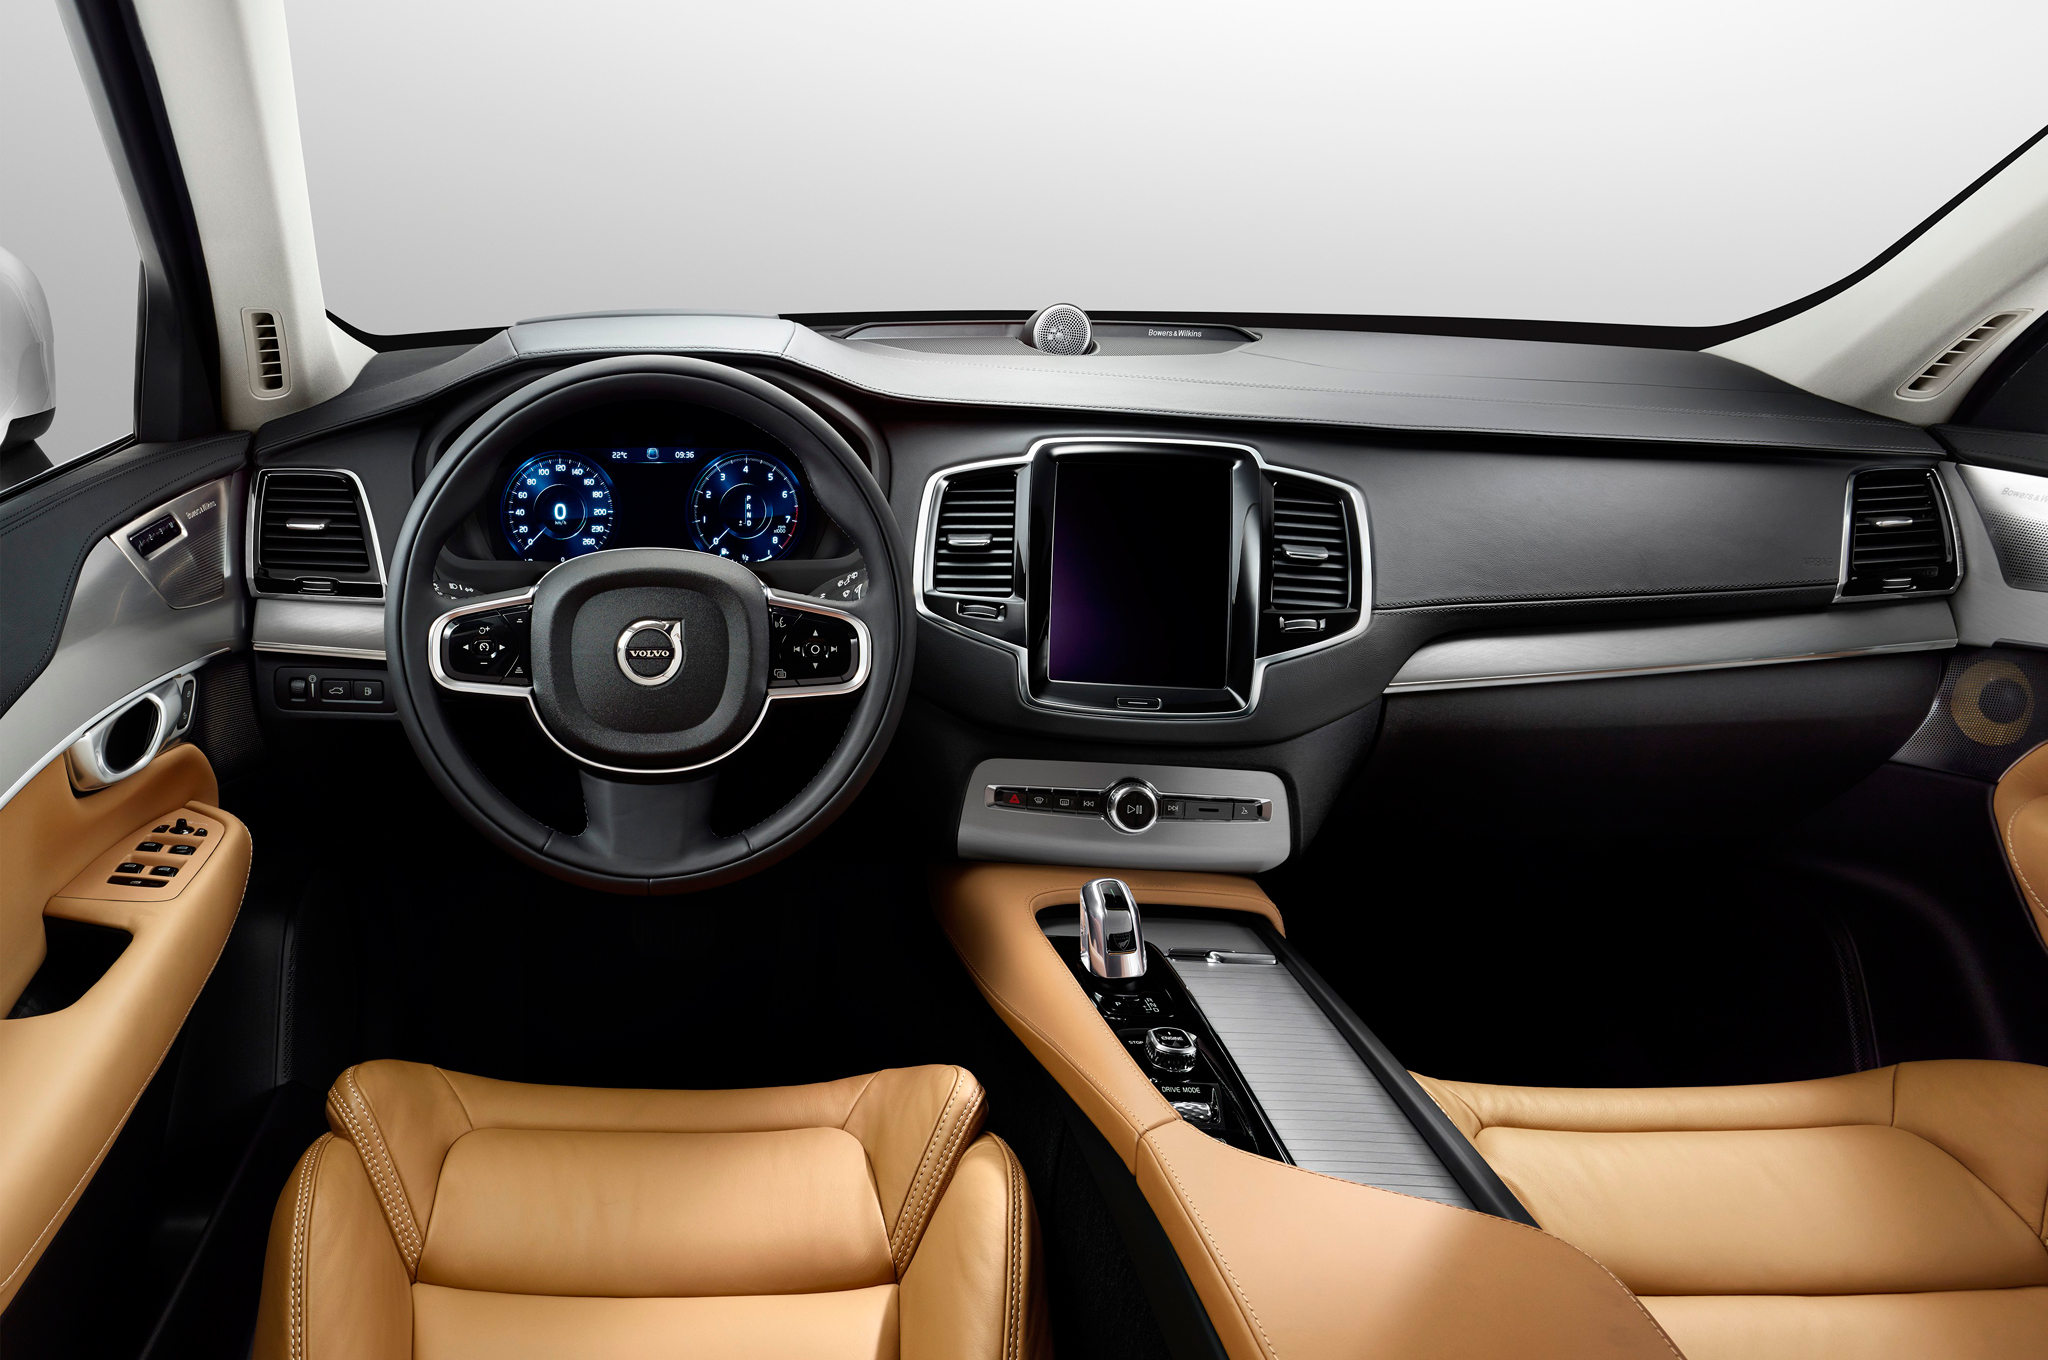 awesome-design-of-the-brown-seats-ideas-with-black-dash-added-with-black-steering-wheel-ideas-as-the-volvo-v90-2016-interior